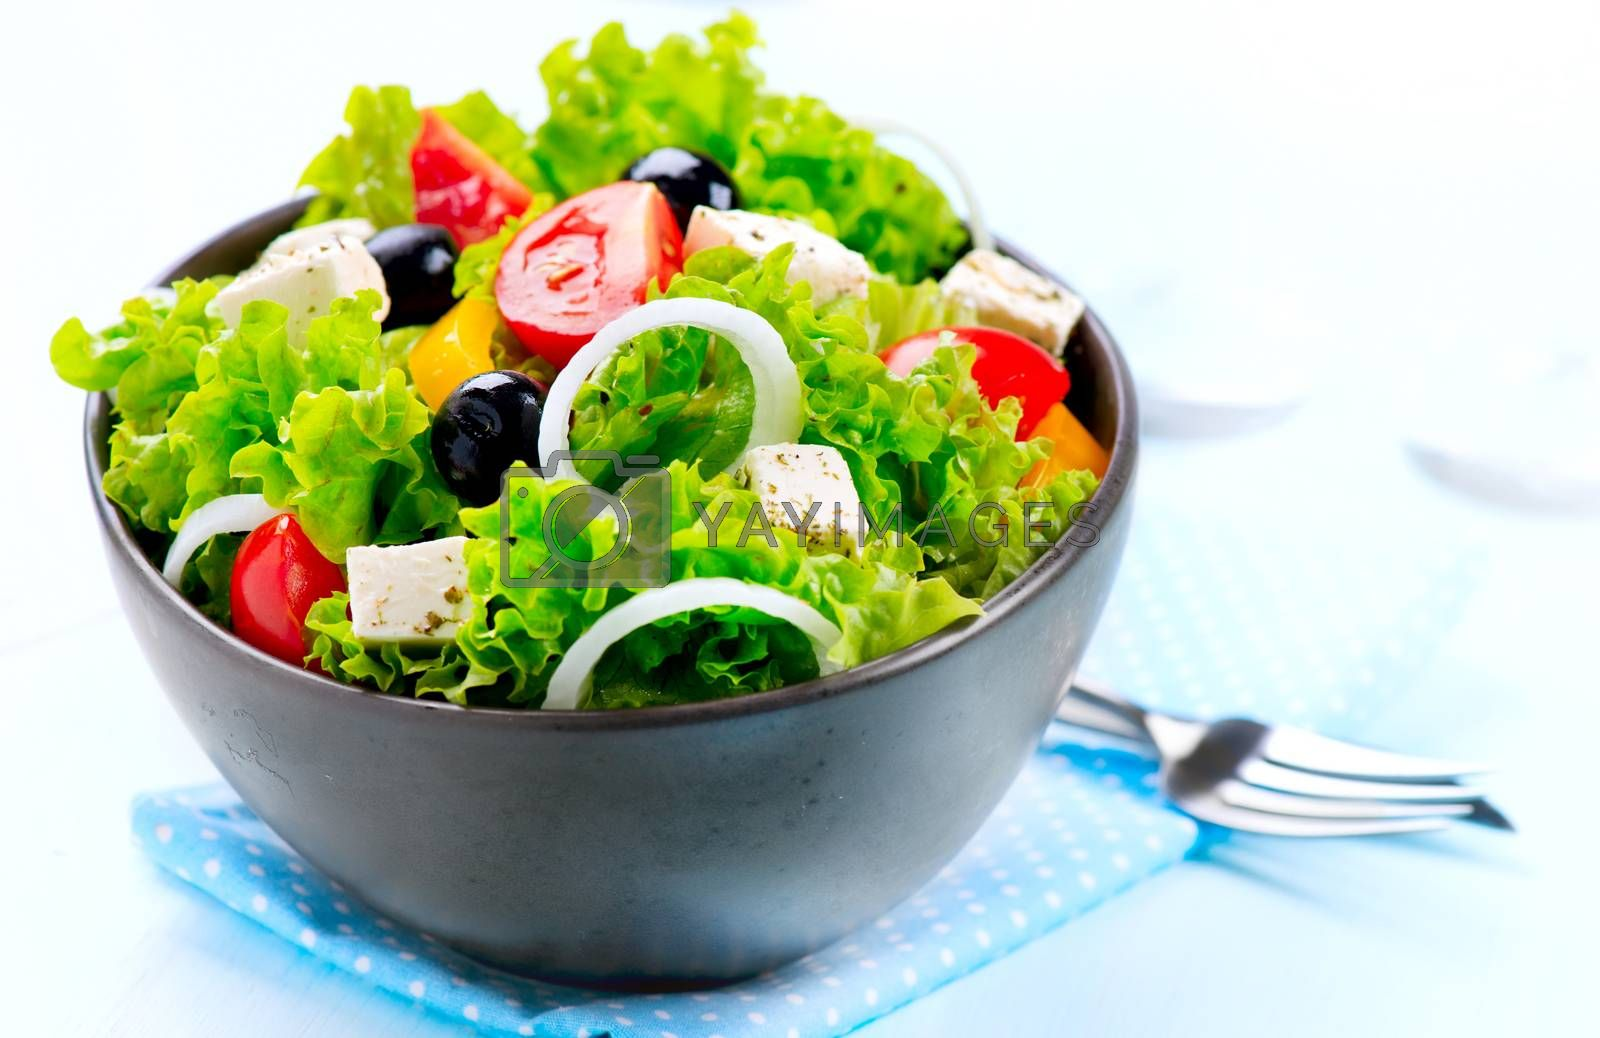 Mediterranean Salad. Greek Salad isolated on a White Background